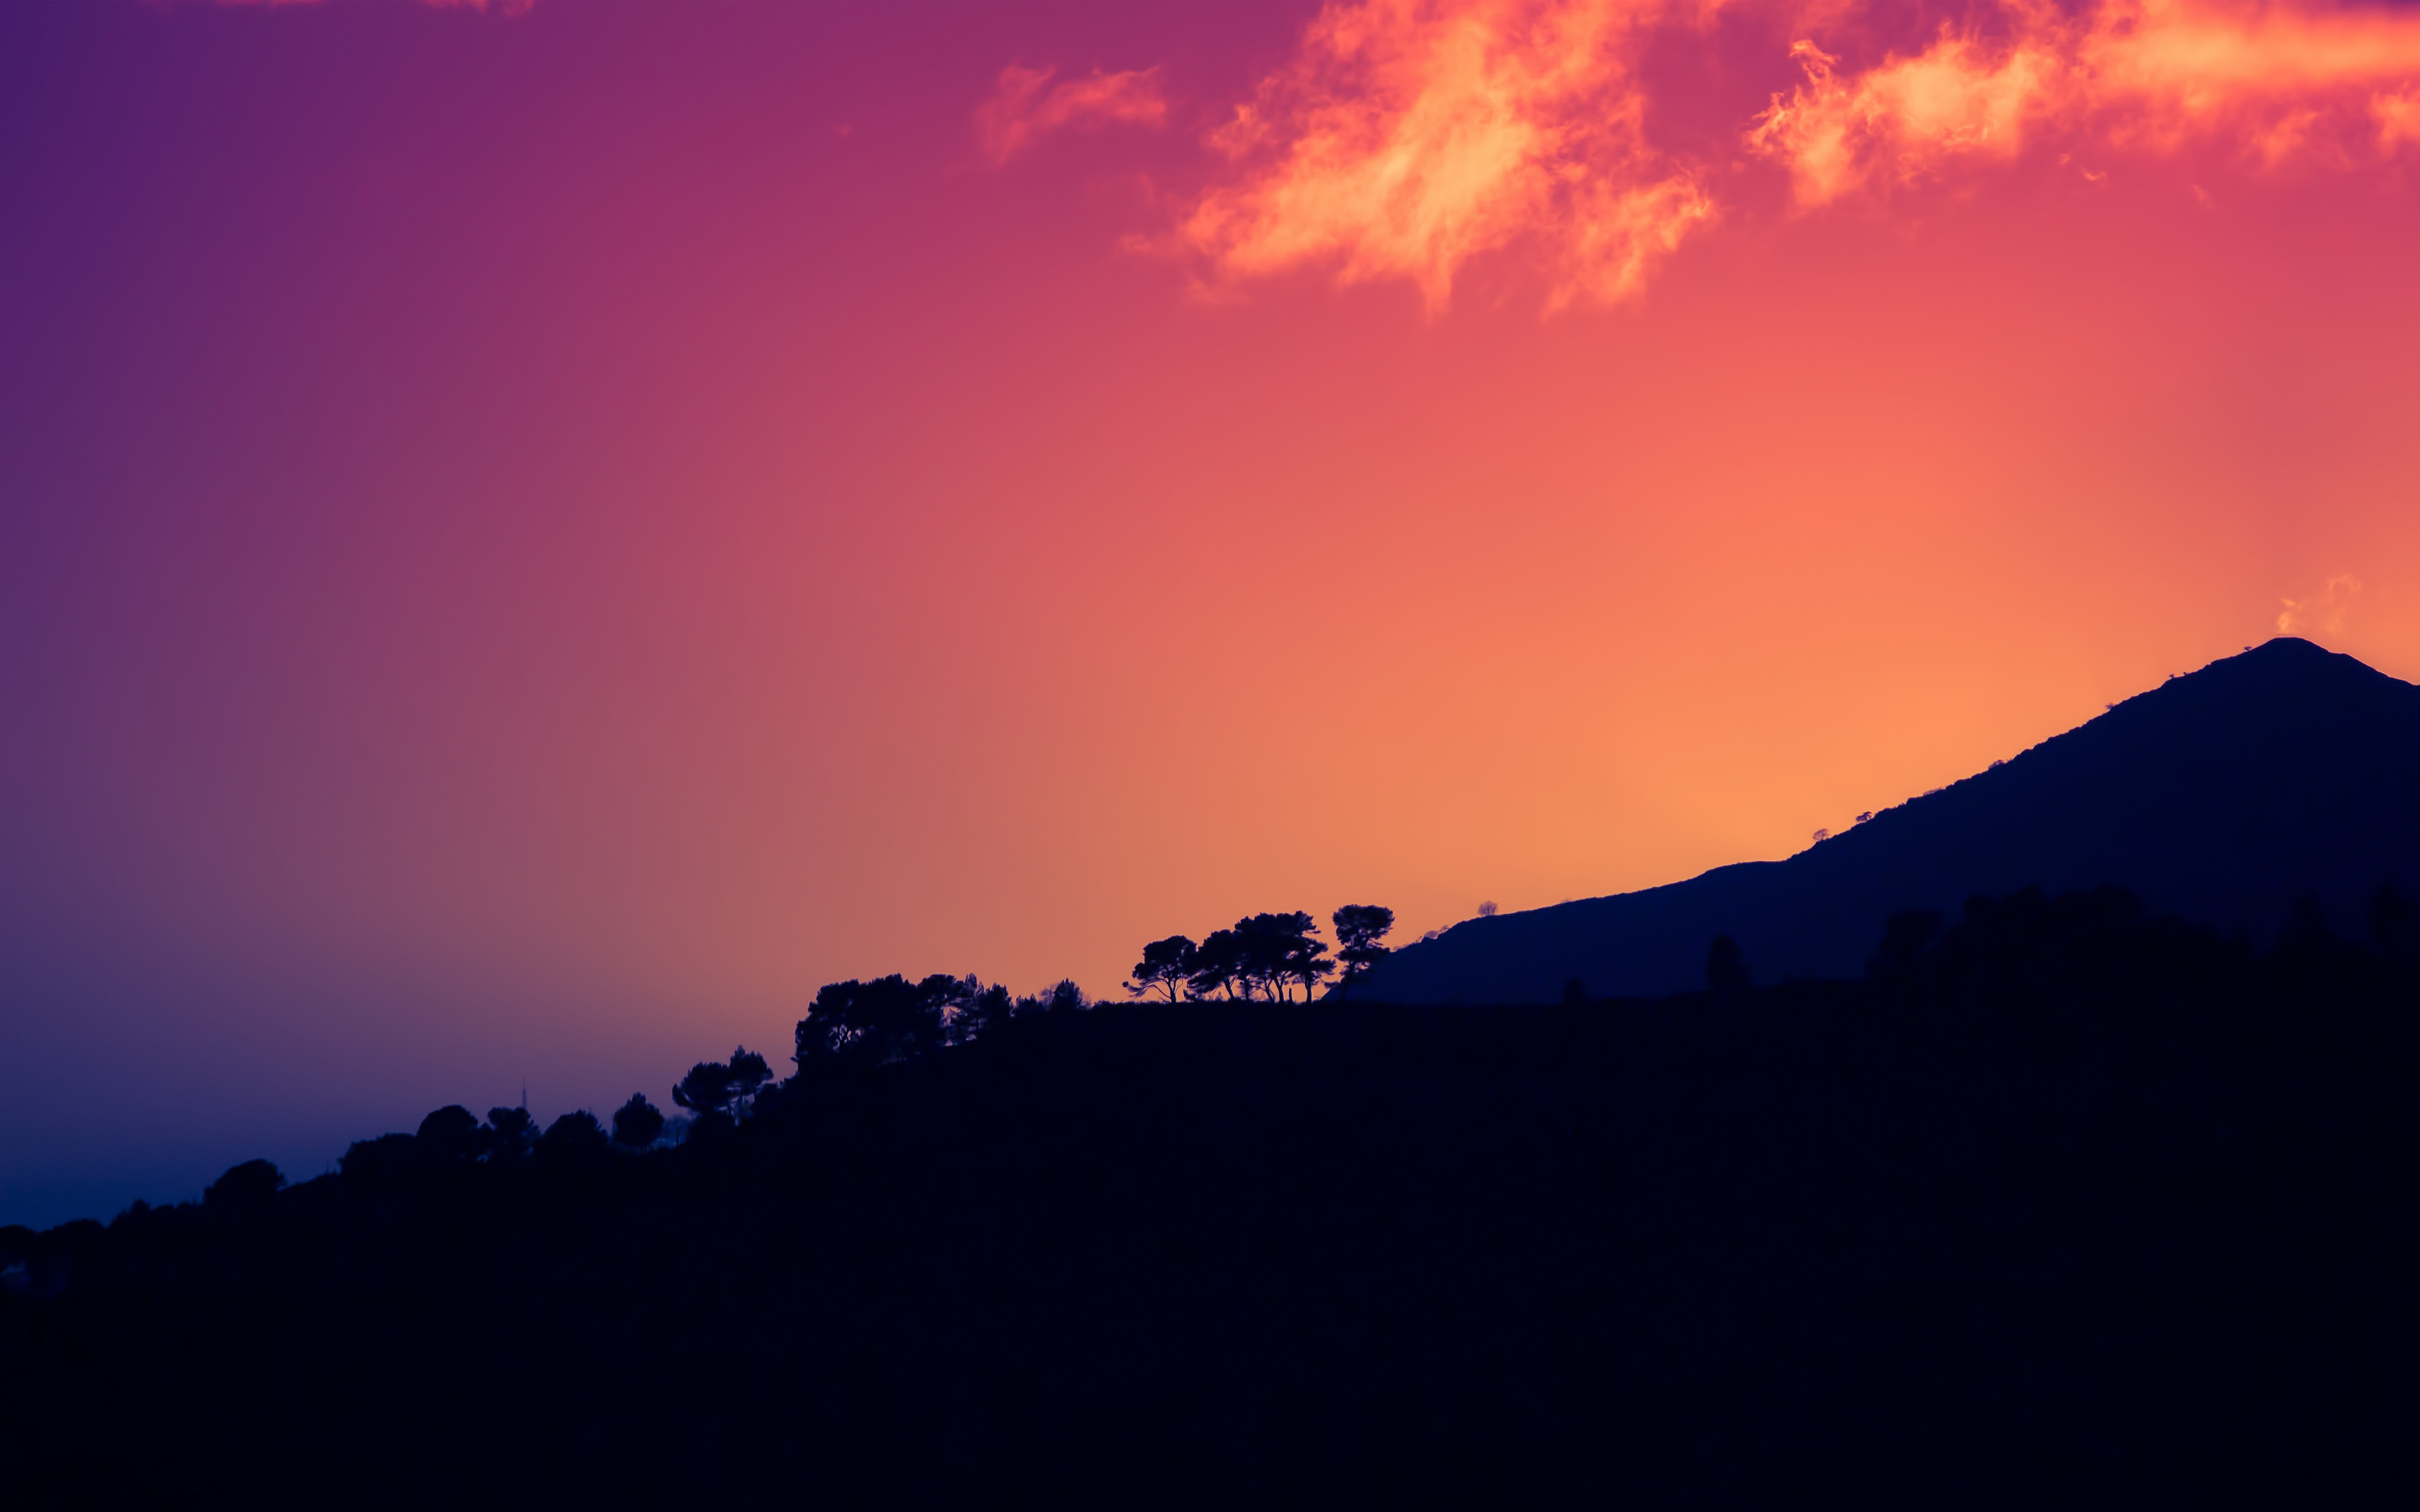 Sunset Dark Mountains Italy HD217855059 - Sunset Dark Mountains Italy HD - Supermoon, sunset, Mountains, Italy, Dark